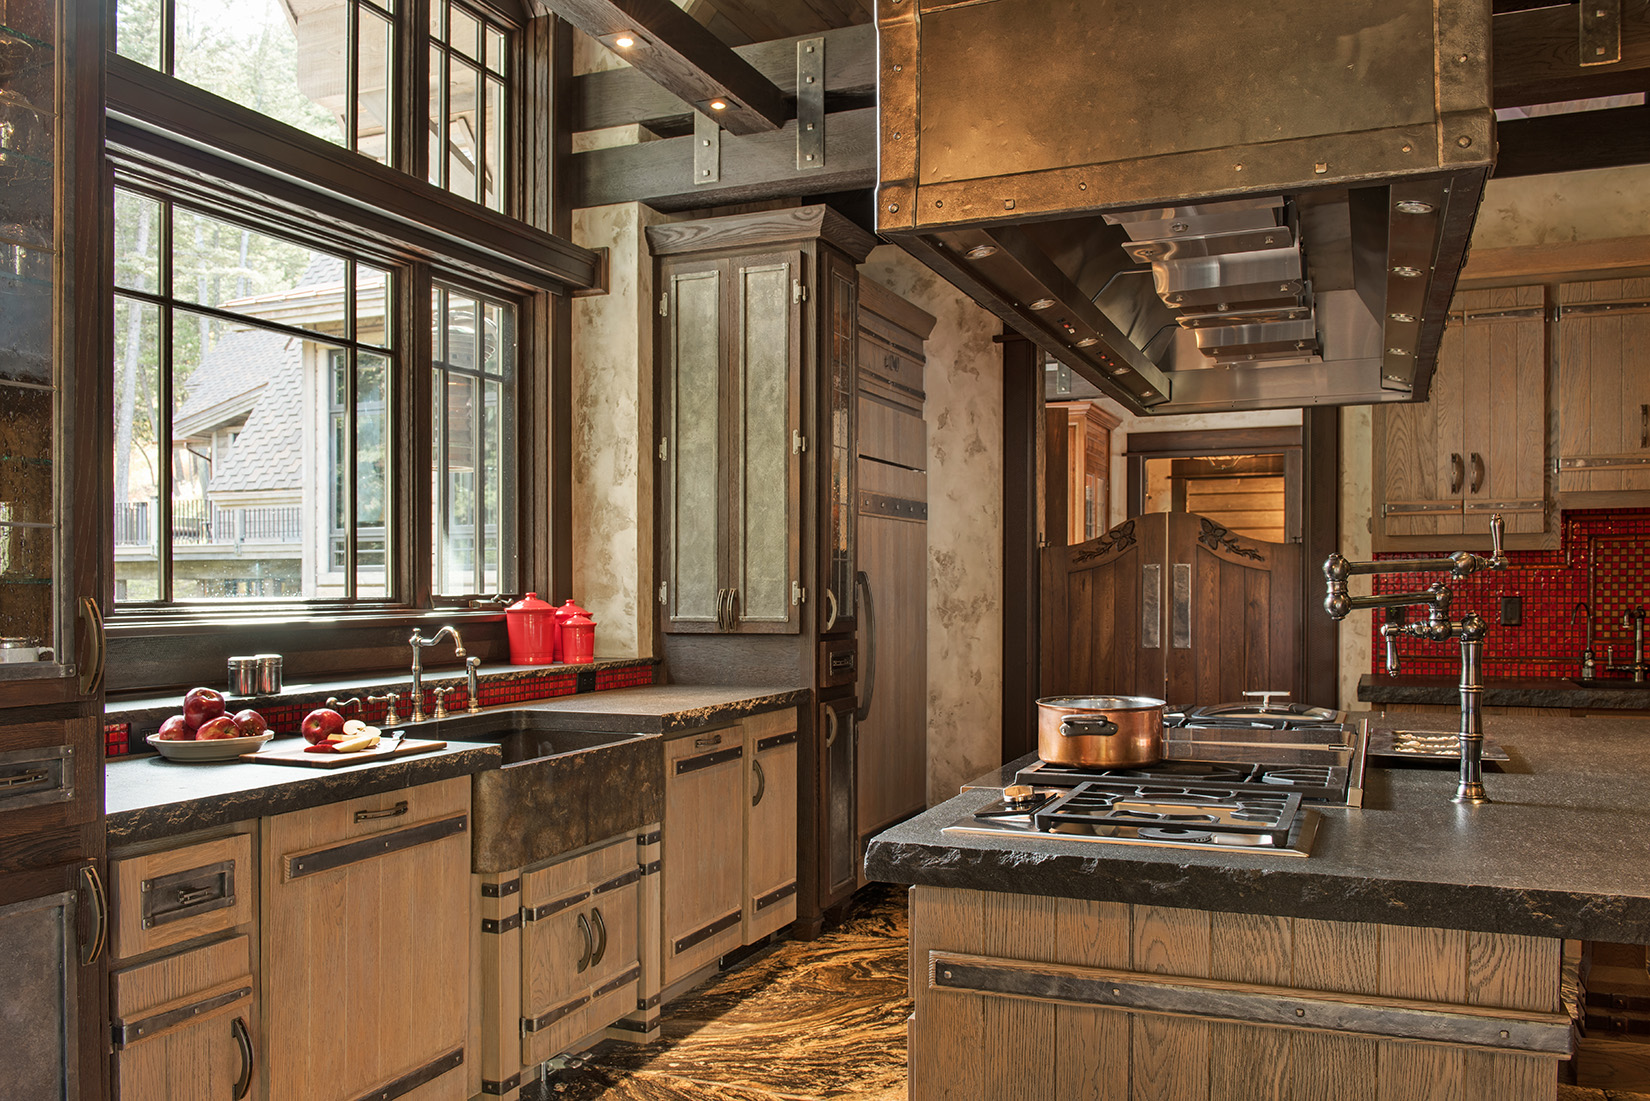 This custom kitchen was such a treat to photograph - so many fun angles to shoot with so little time!!!